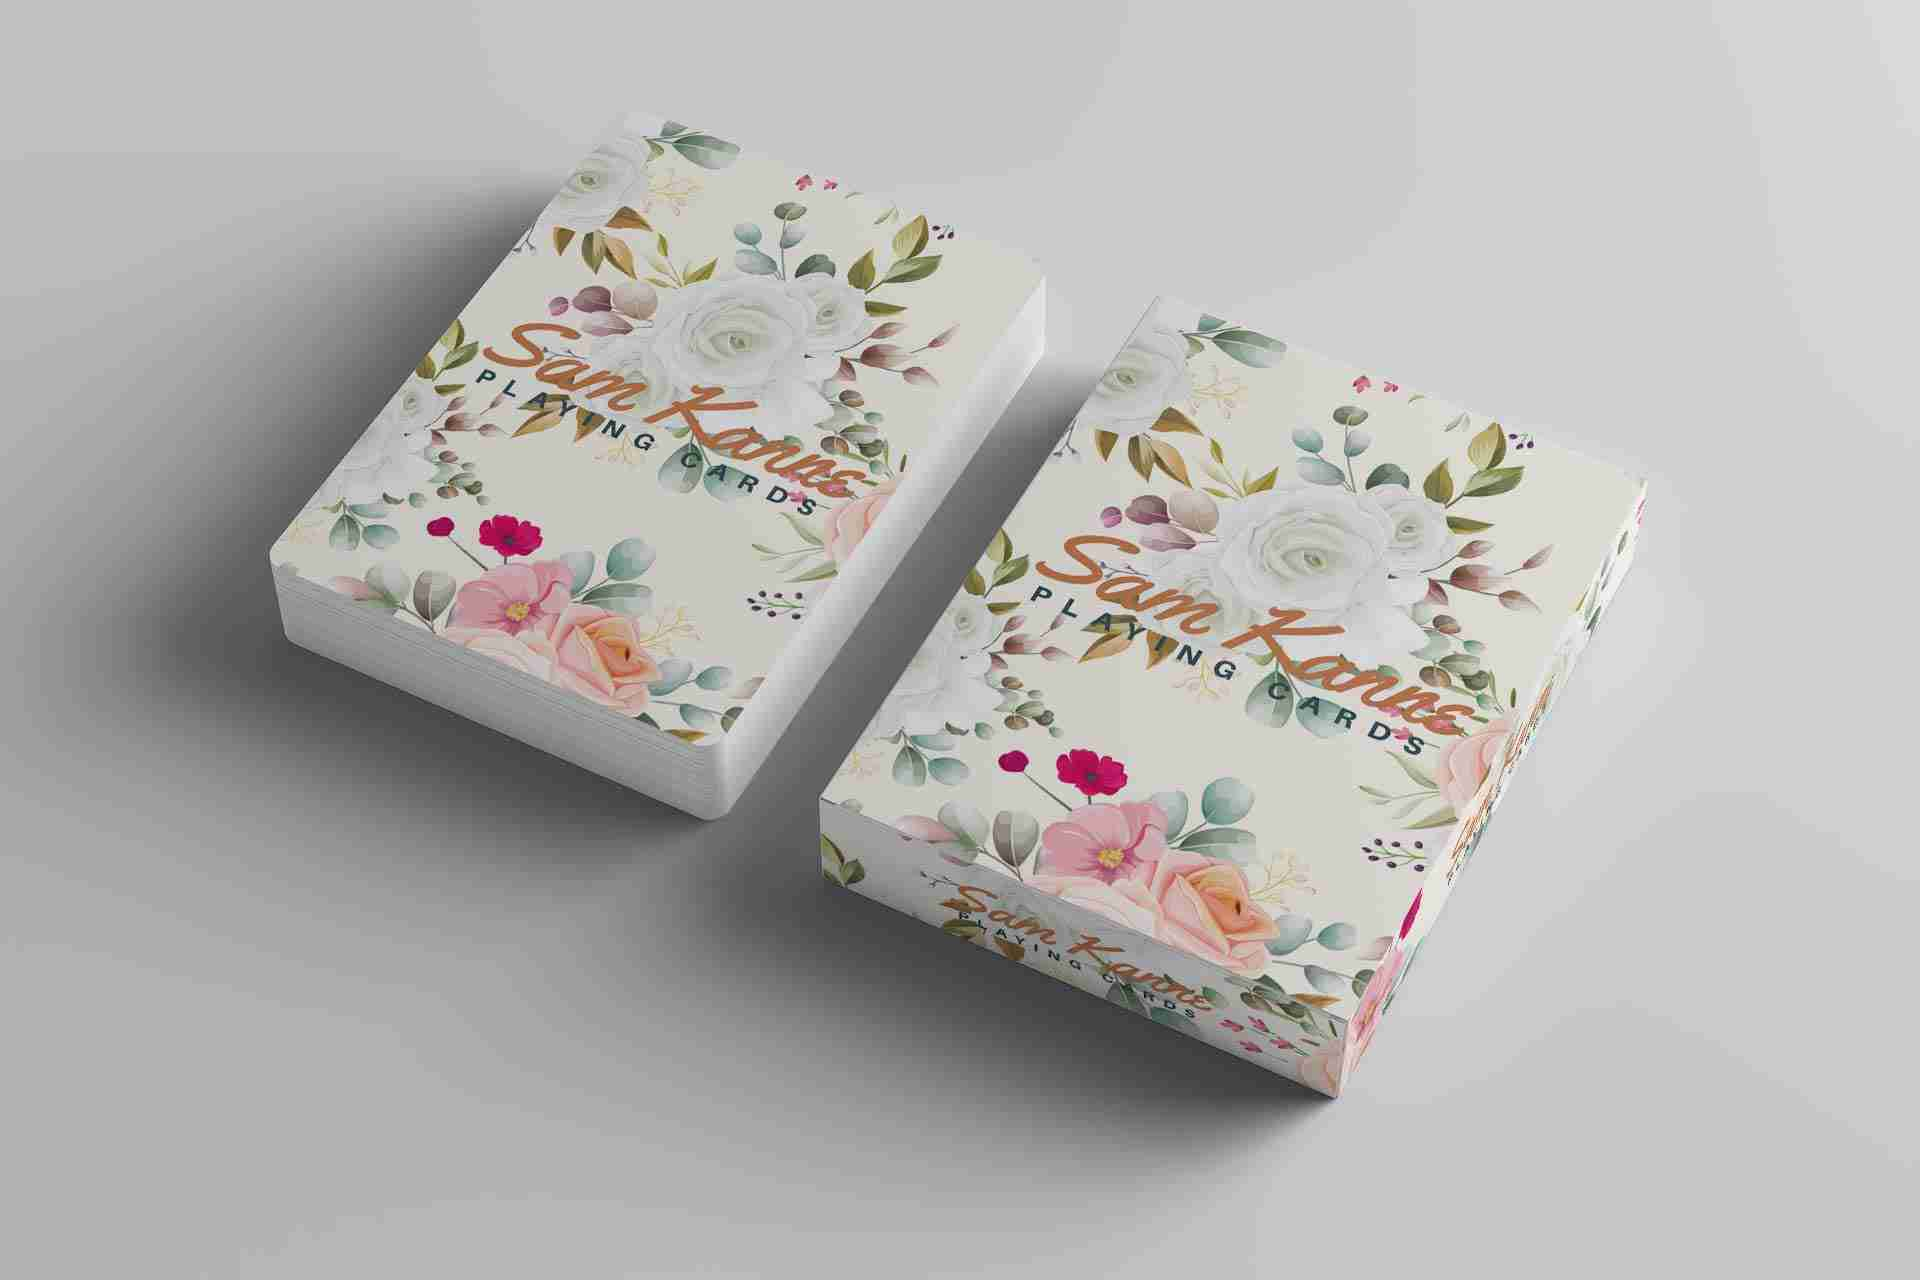 Playing-Cards-Design-Option-1